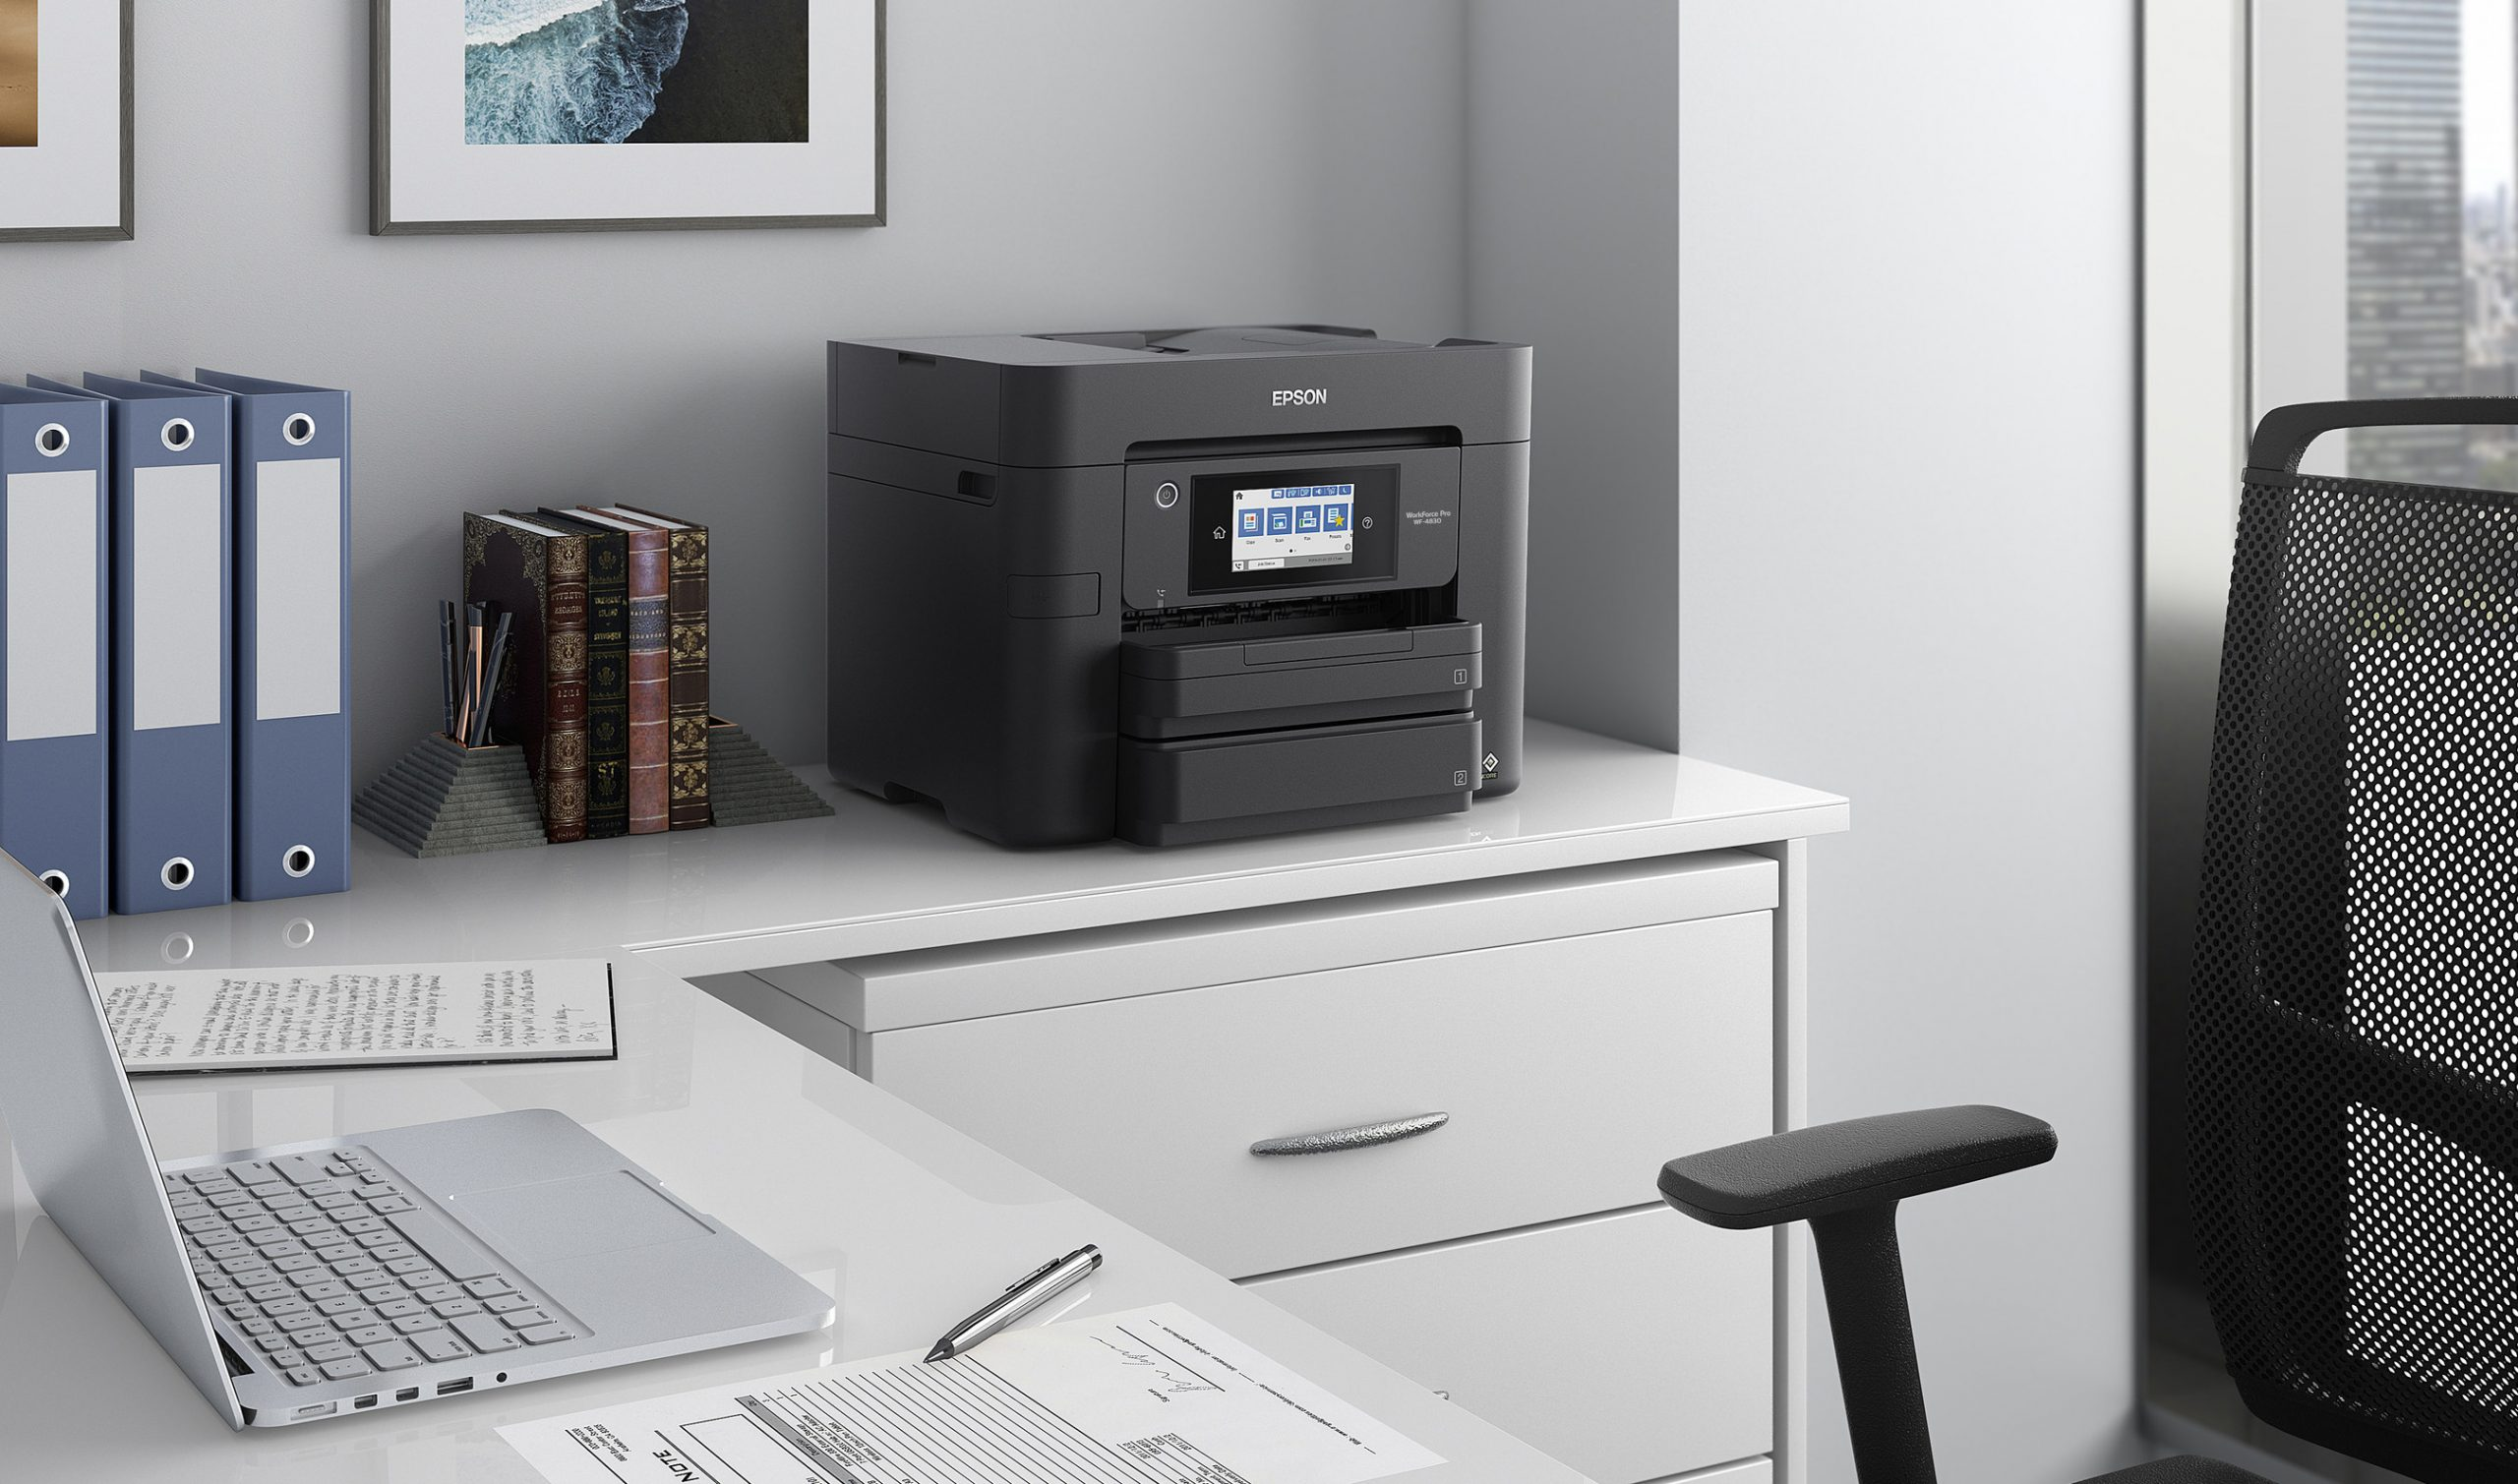 The new high-performance Epson WorkForce Pro lineup helps amplify efficiency and productivity in business, work from home and learn from home environments.